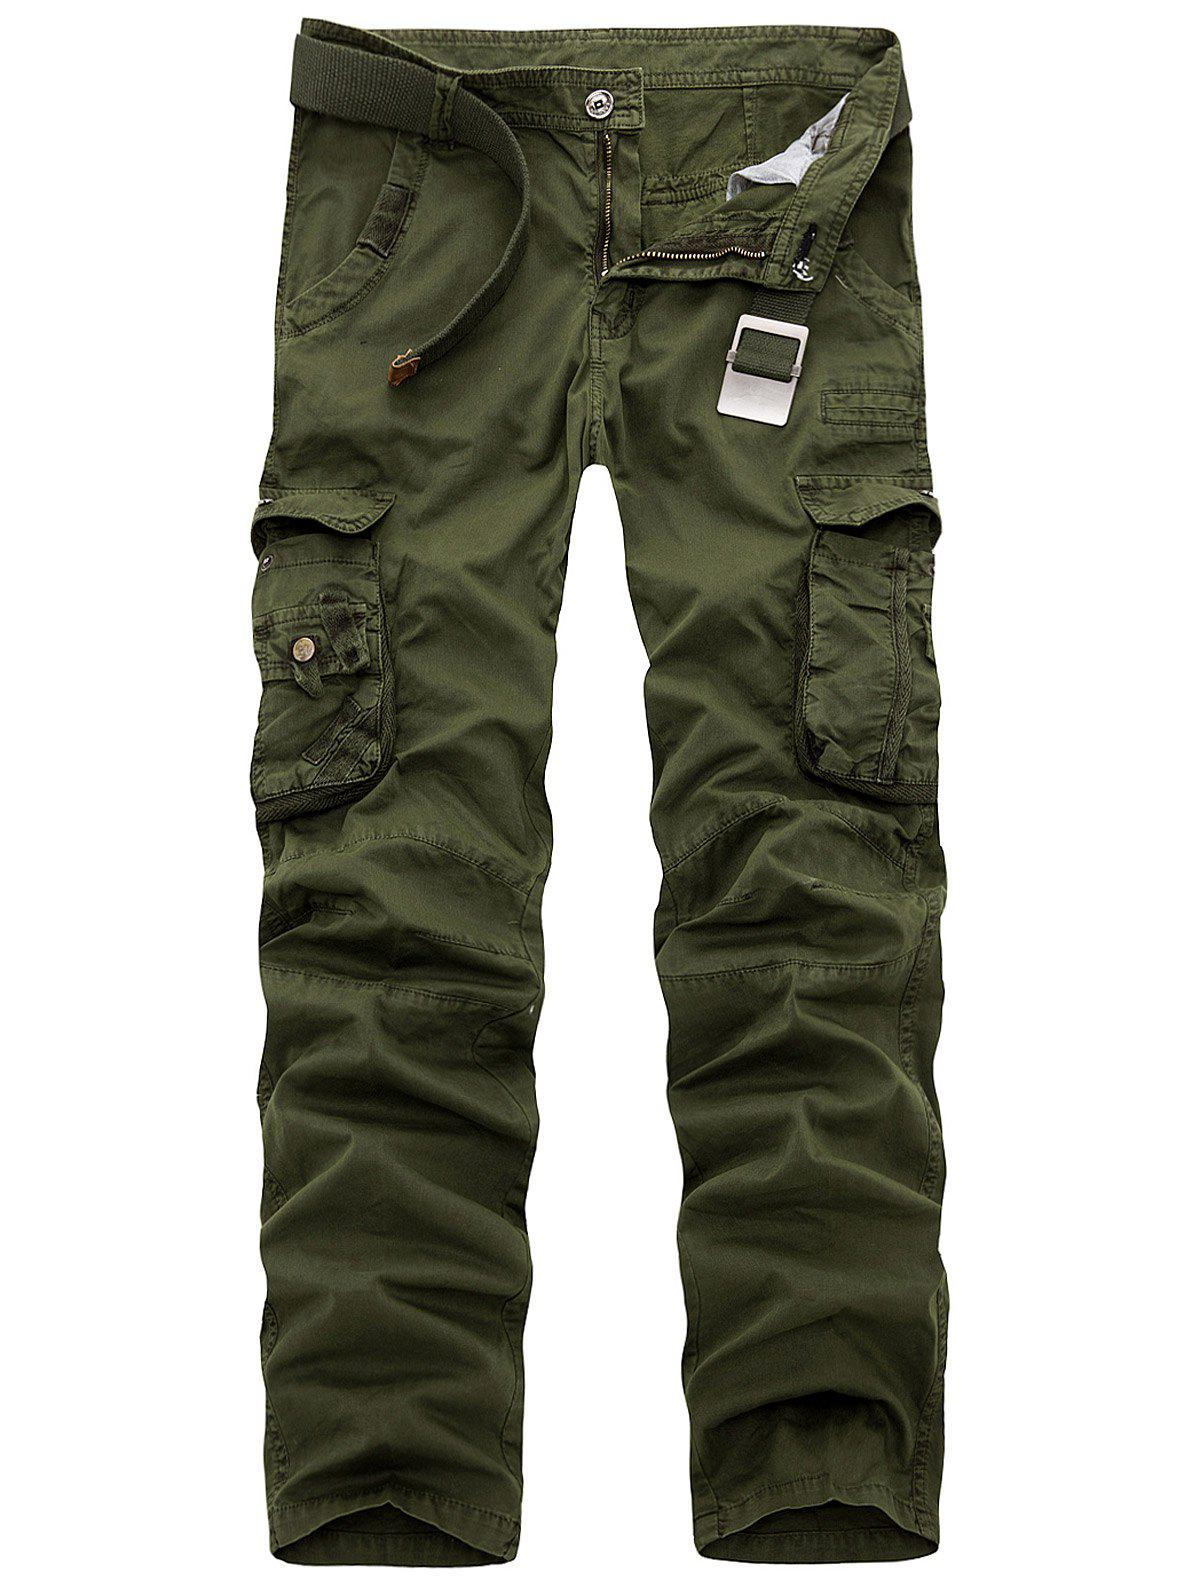 Multi Pockets Zipper Fly Slimming Cargo Pants - ARMY GREEN 38